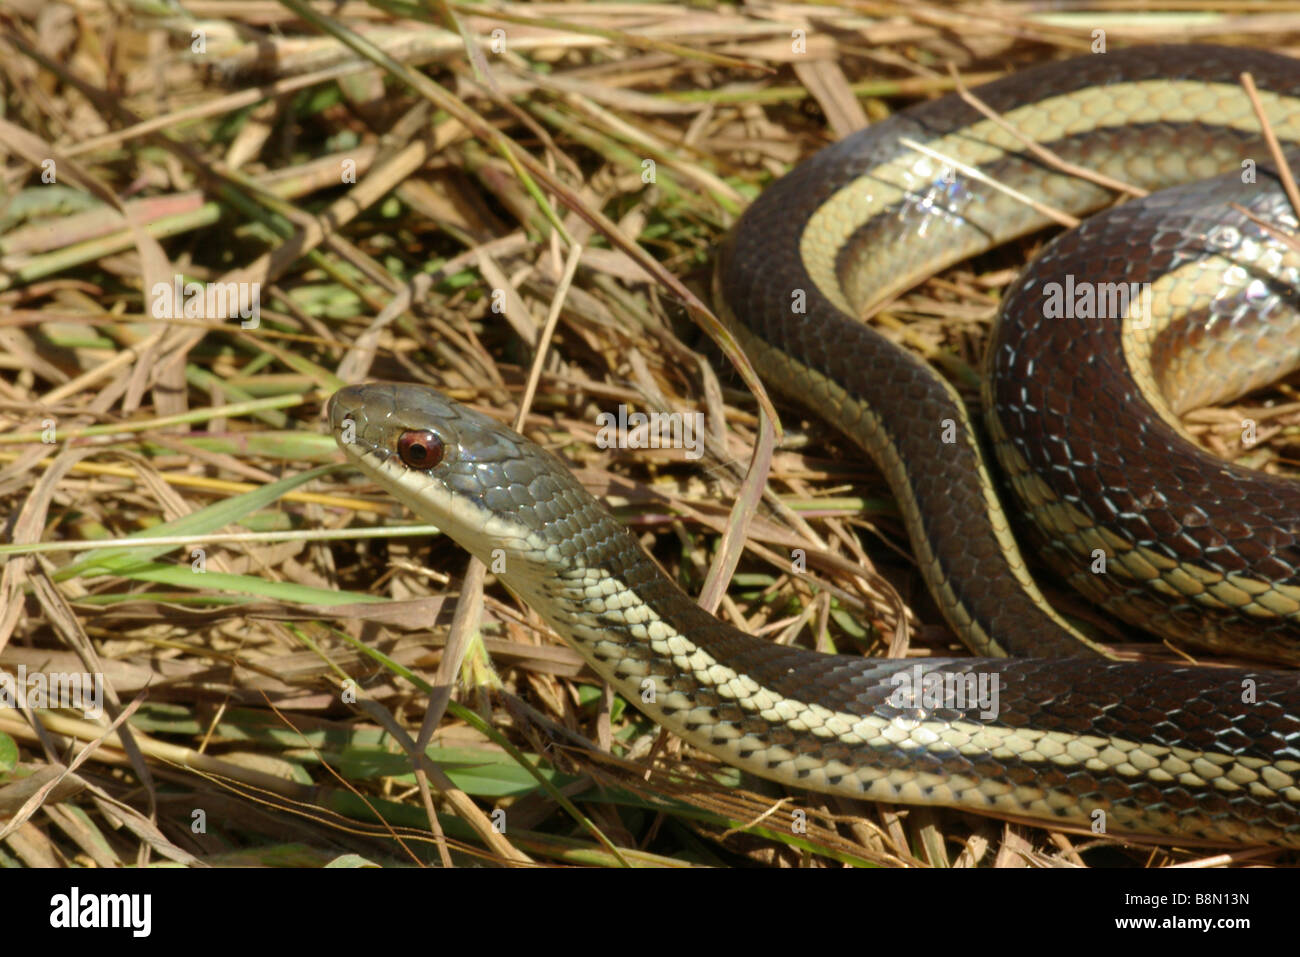 Lateral Water Snake (Bibilava lateralis) on dry grass in Anjaha Community Reserve, Madagascar. - Stock Image